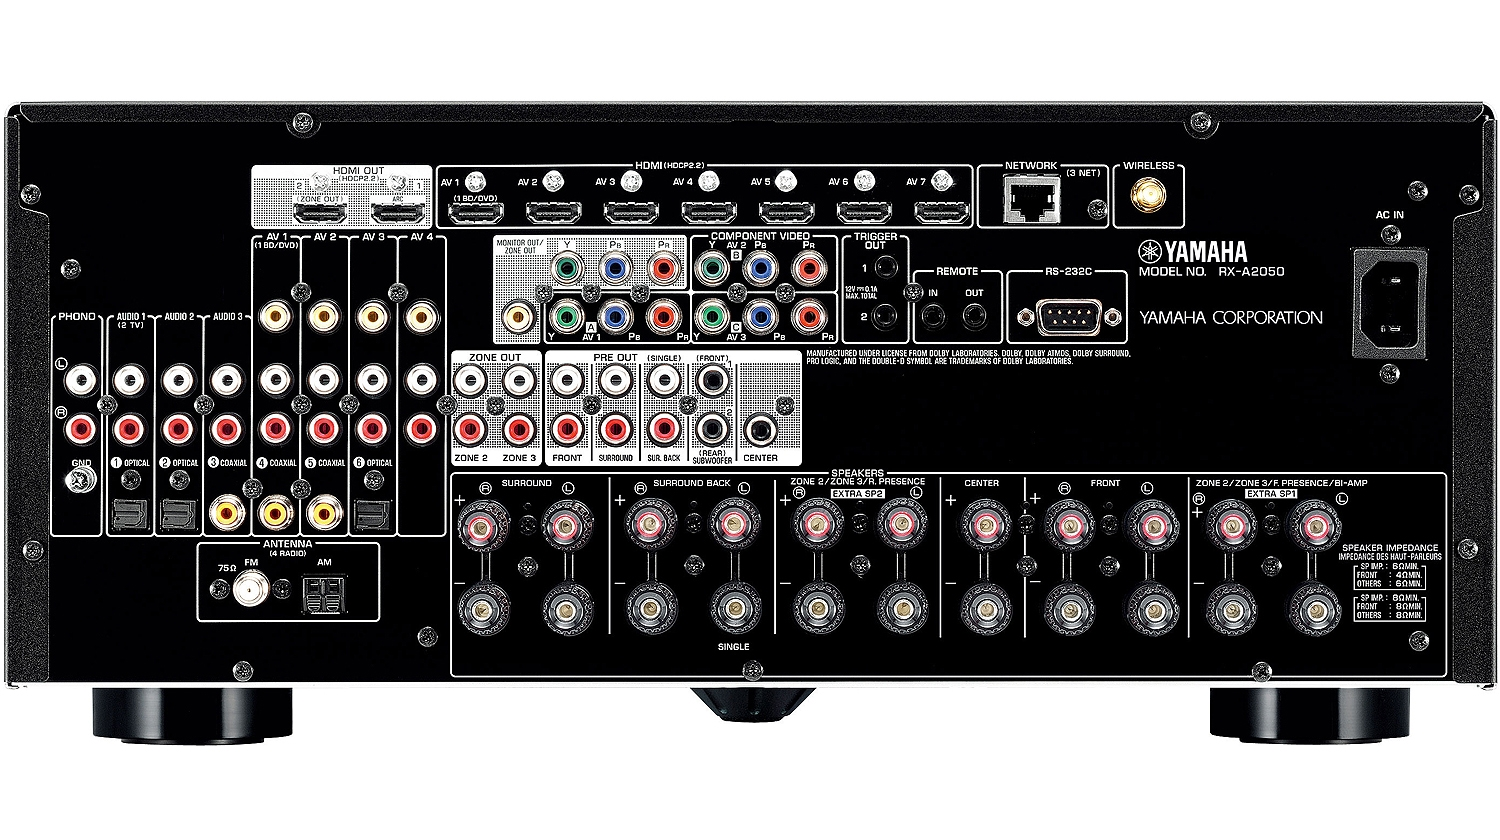 Yamaha Multi Channell Stero For Wholehouse Hookup